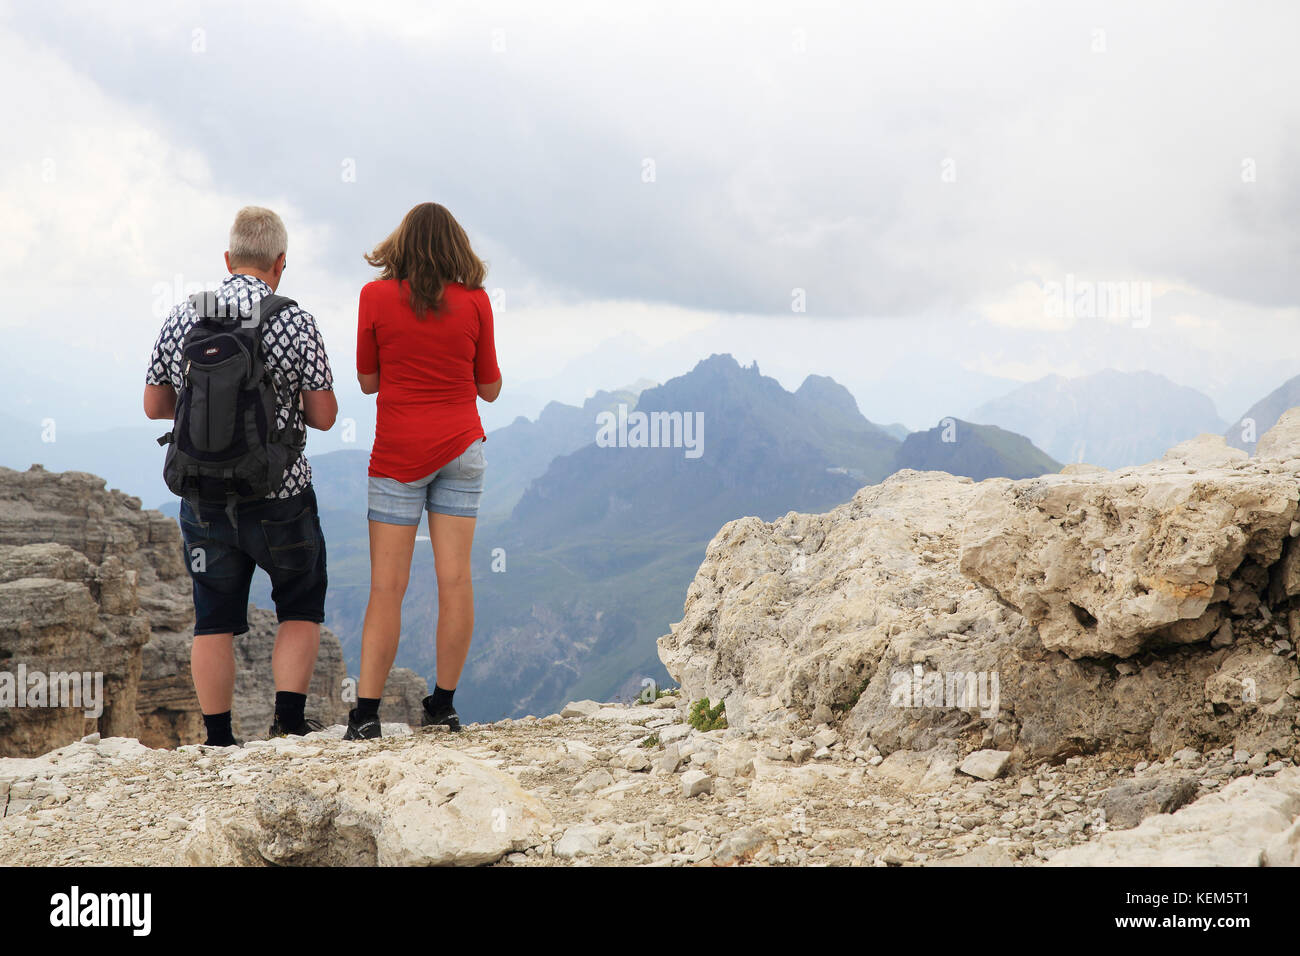 Couple walking at the Pordoi Pass, in Canazei, in the Dolomites, in the Province of Trento, north Italy - Stock Image